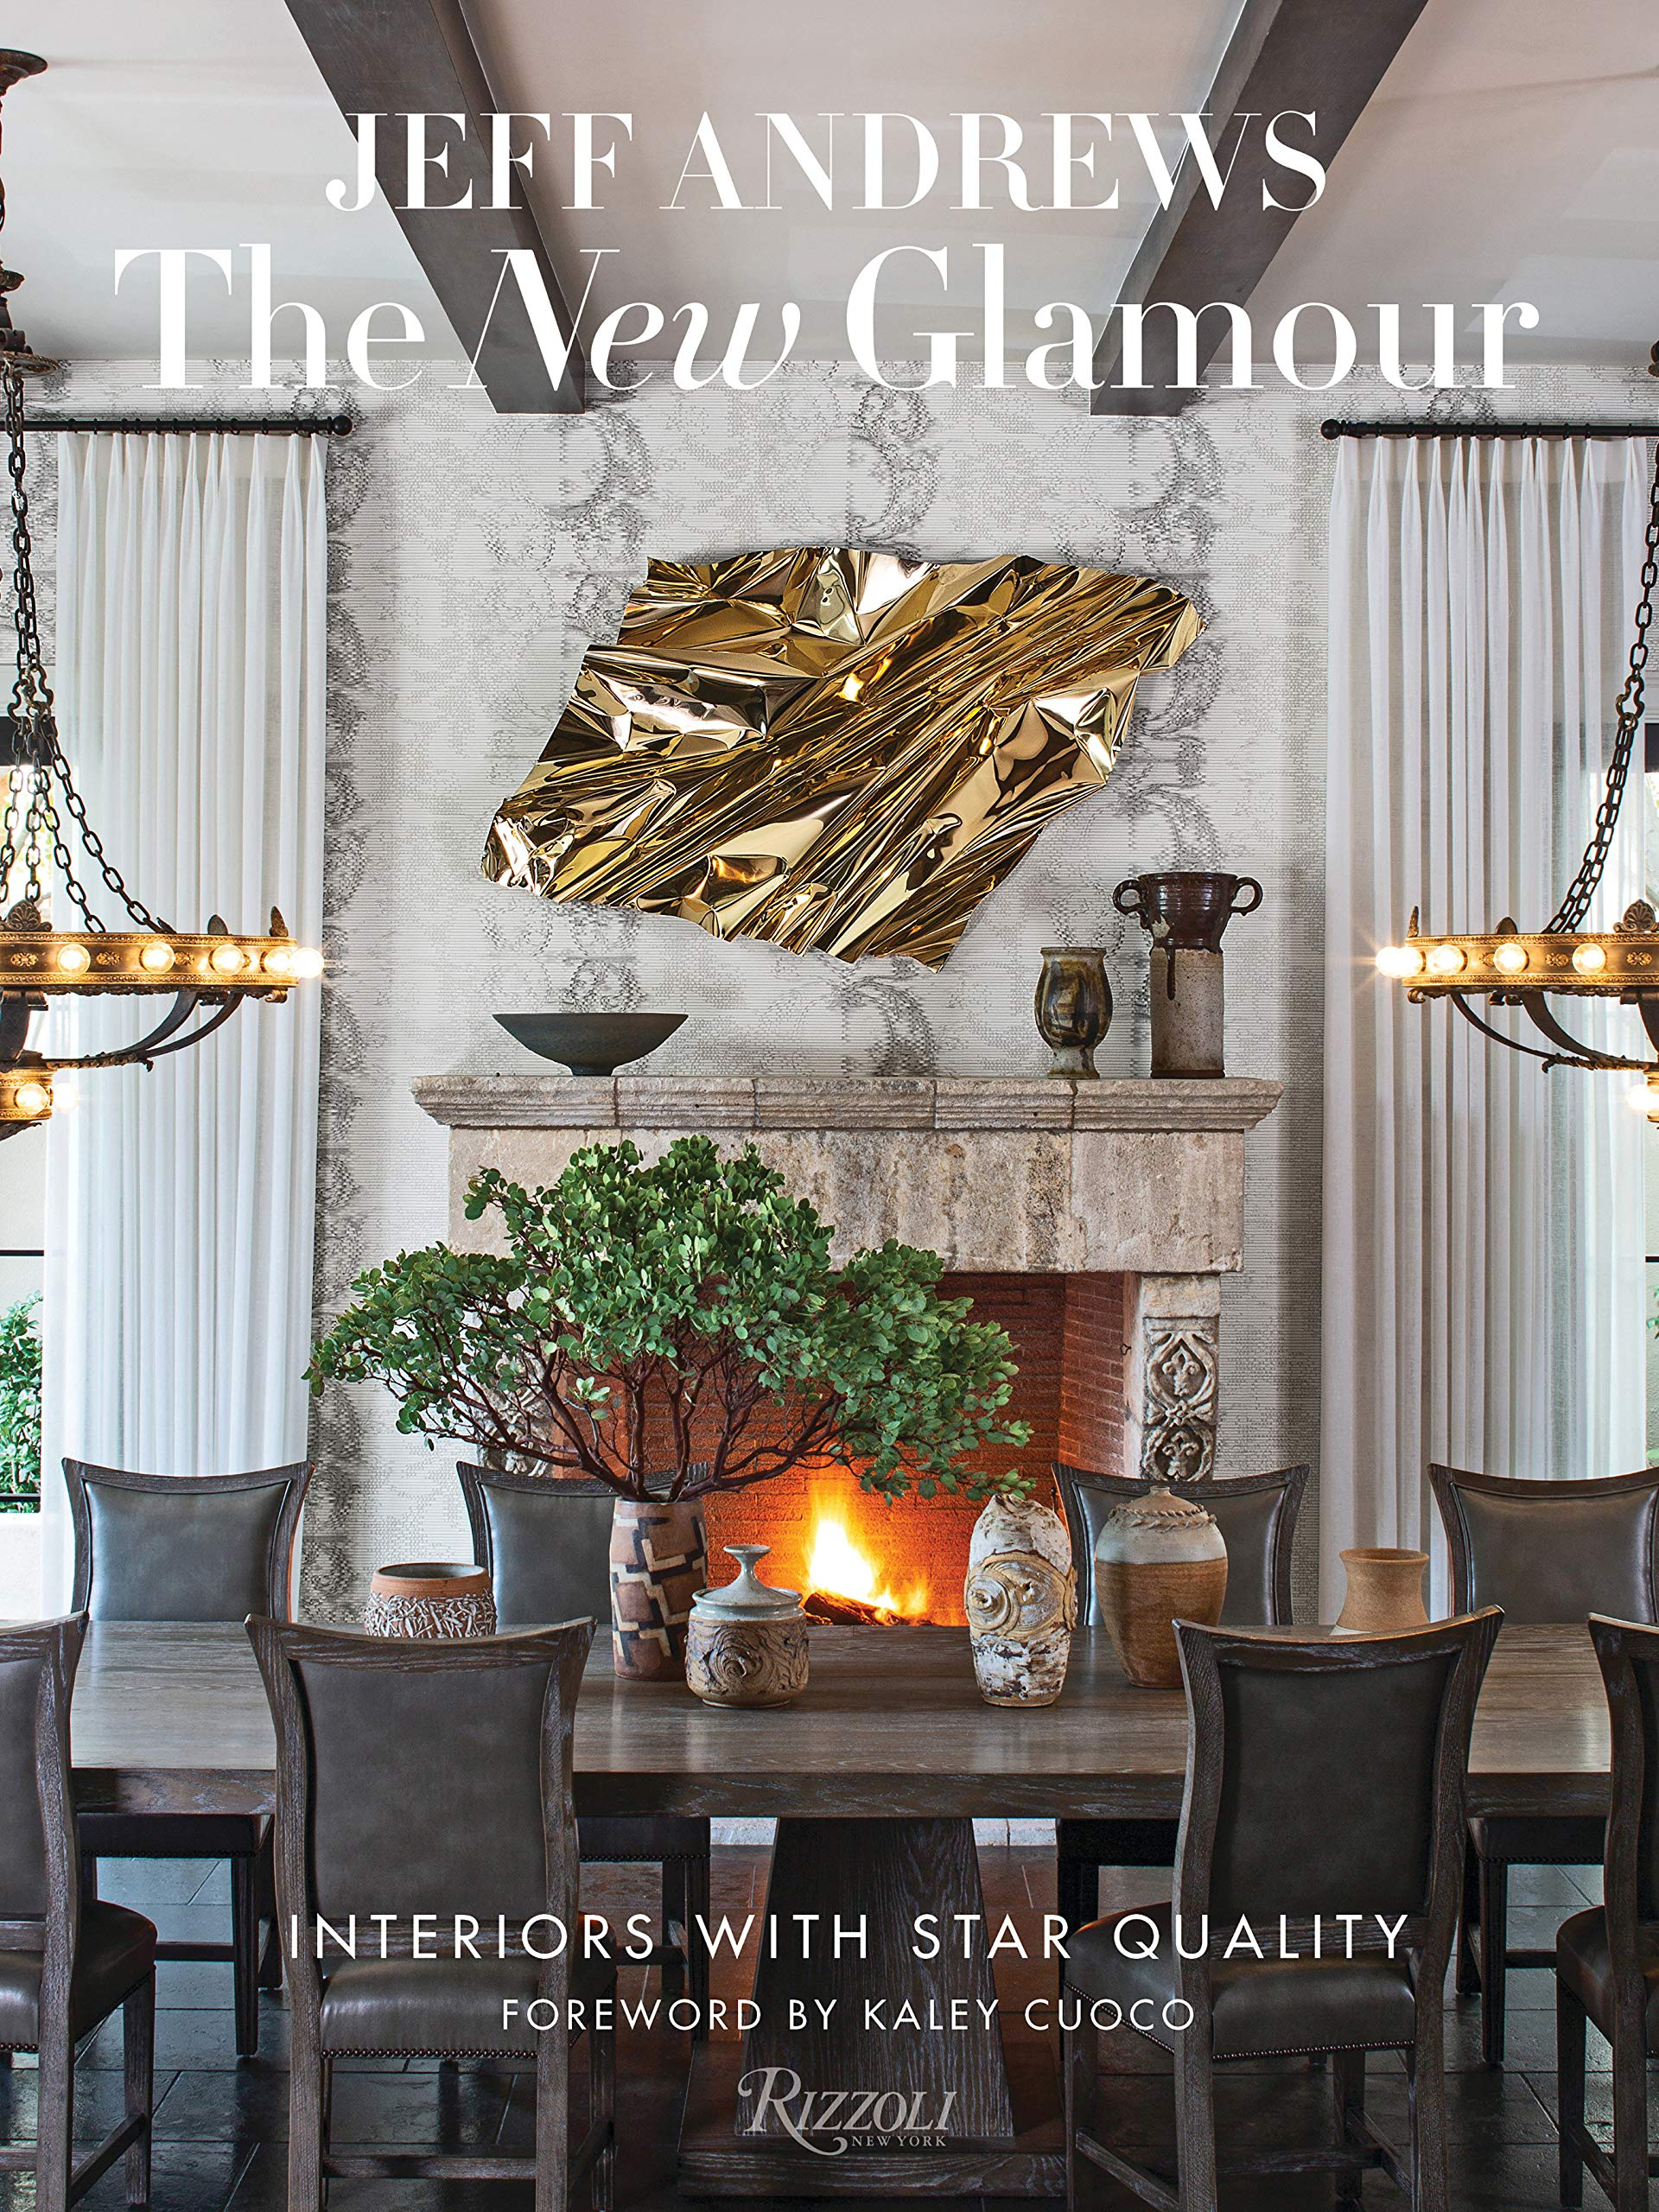 The New Glamour Interiors With Star Quality Andrews Jeff Cuoco Kaley 9780847866328 Amazon Com Books